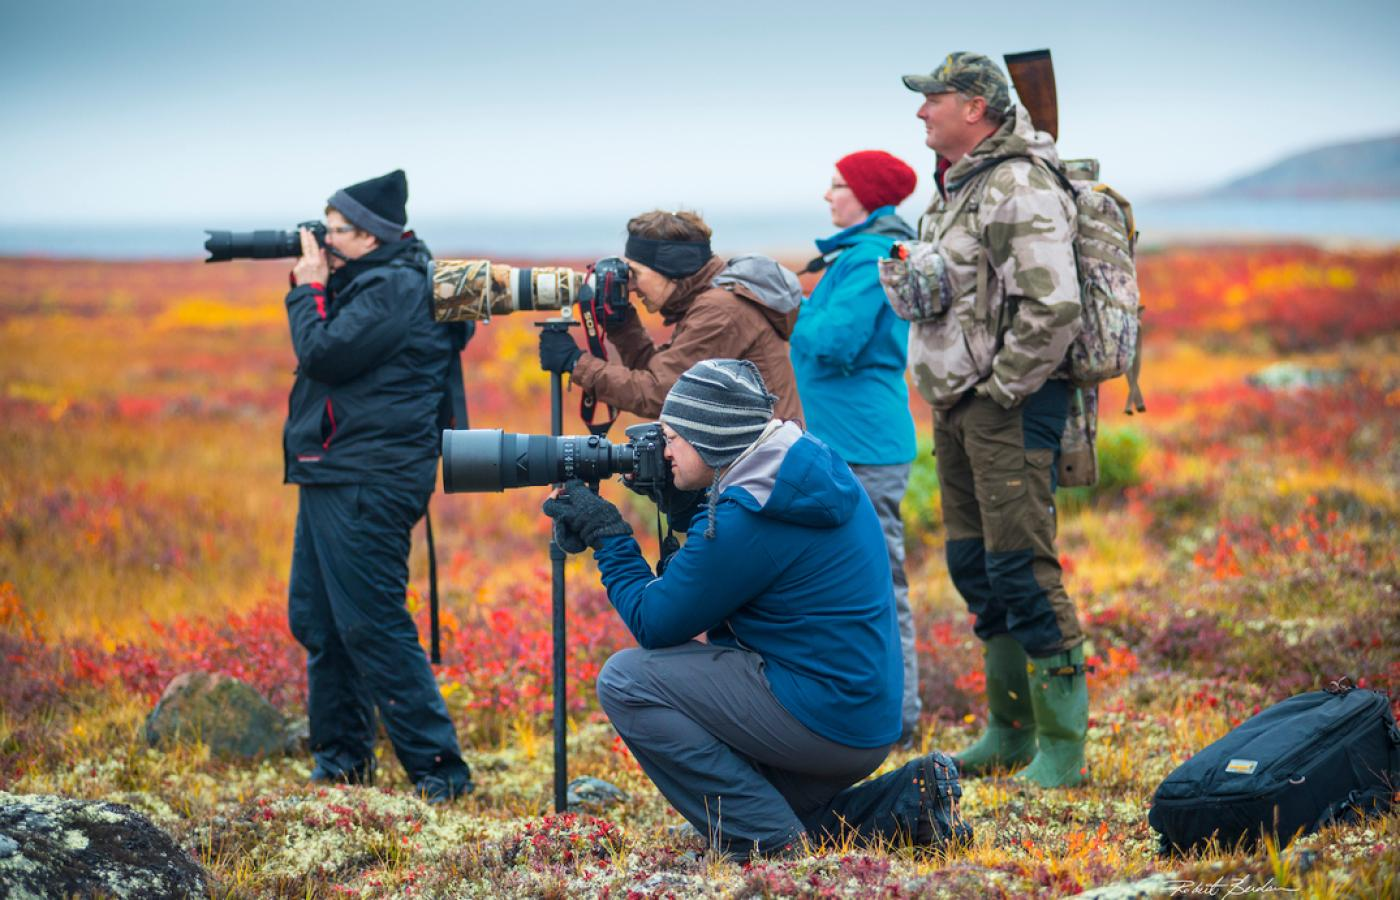 Take photos on the Barrenlands in the Northwest Territories